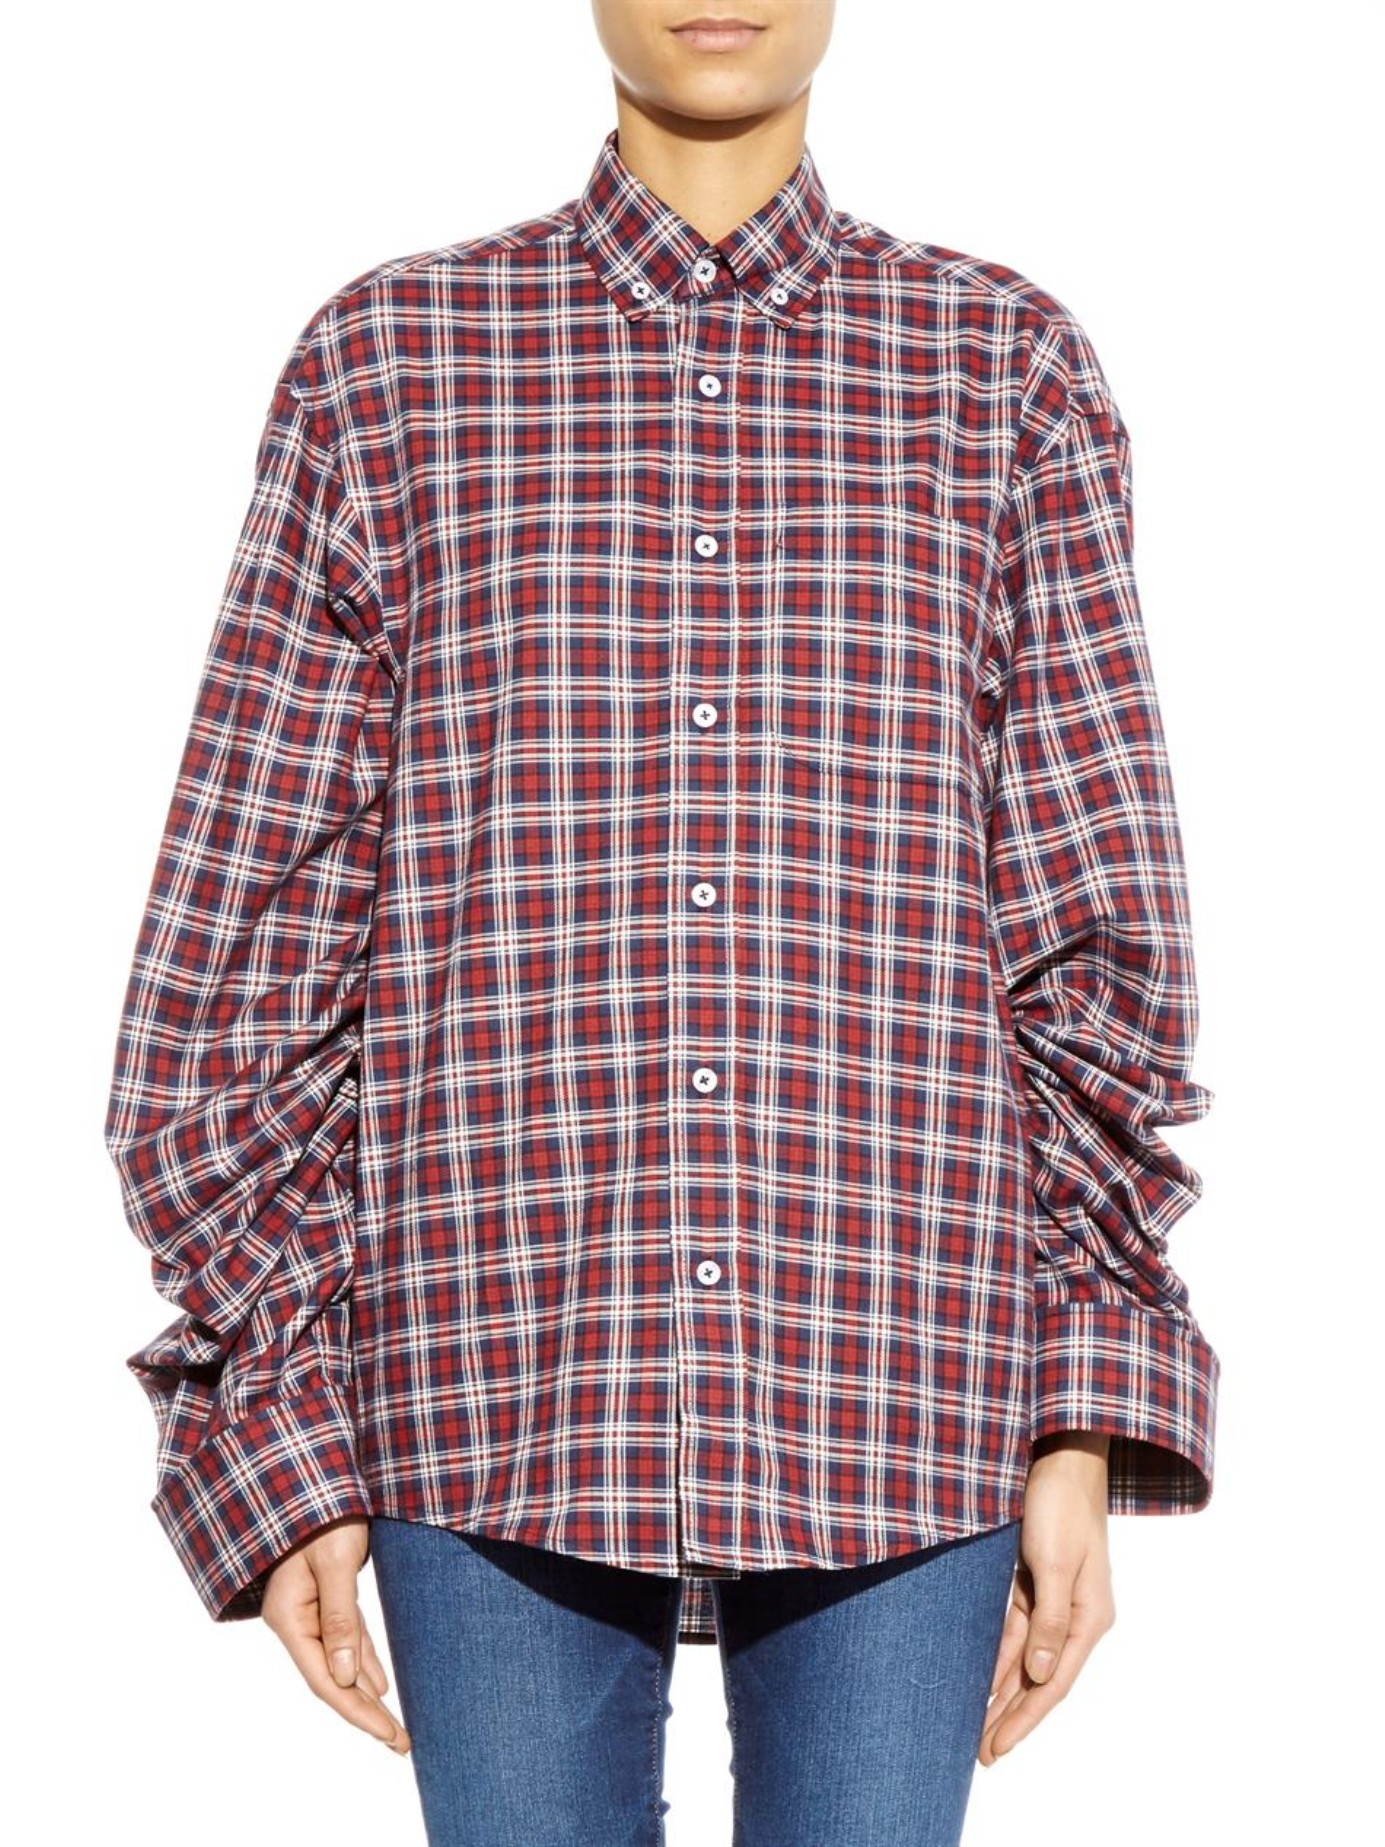 Lyst vetements oversized plaid cotton shirt in red for Oversized red plaid shirt